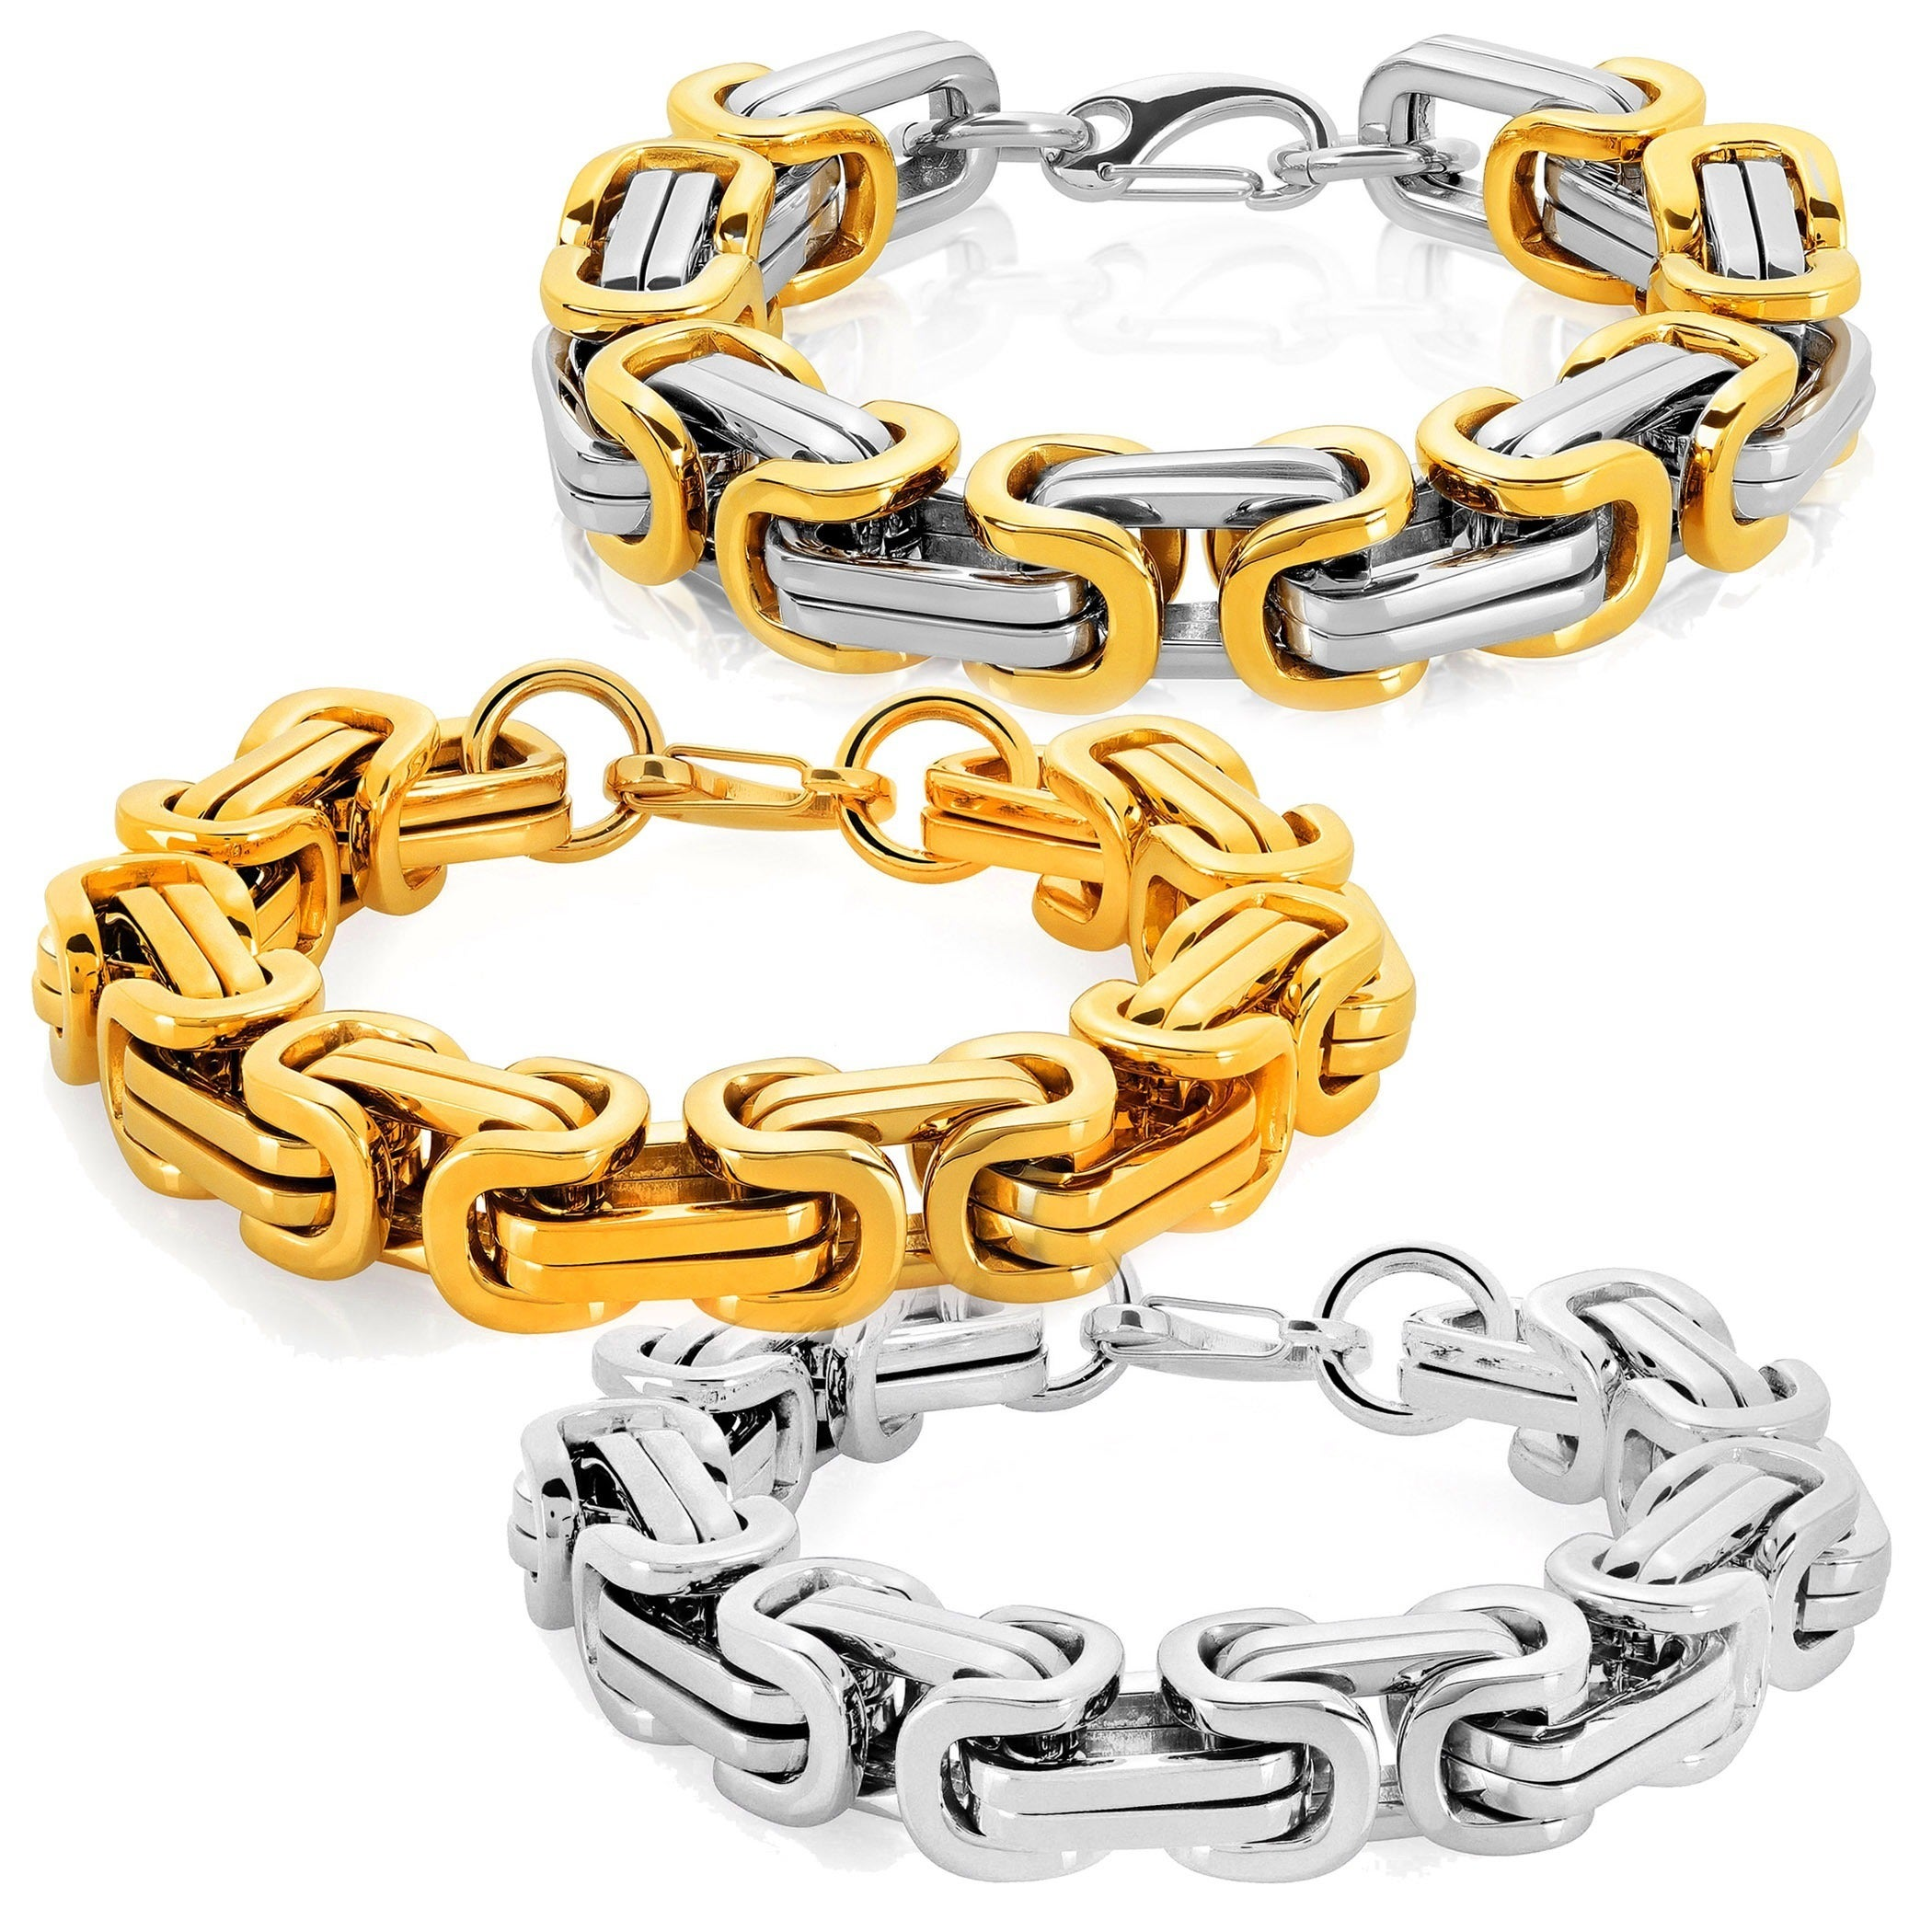 Crucible Stainless Steel Byzantine Bracelet 17mm Wide 11 5 Inches Free Shipping Today 13181415